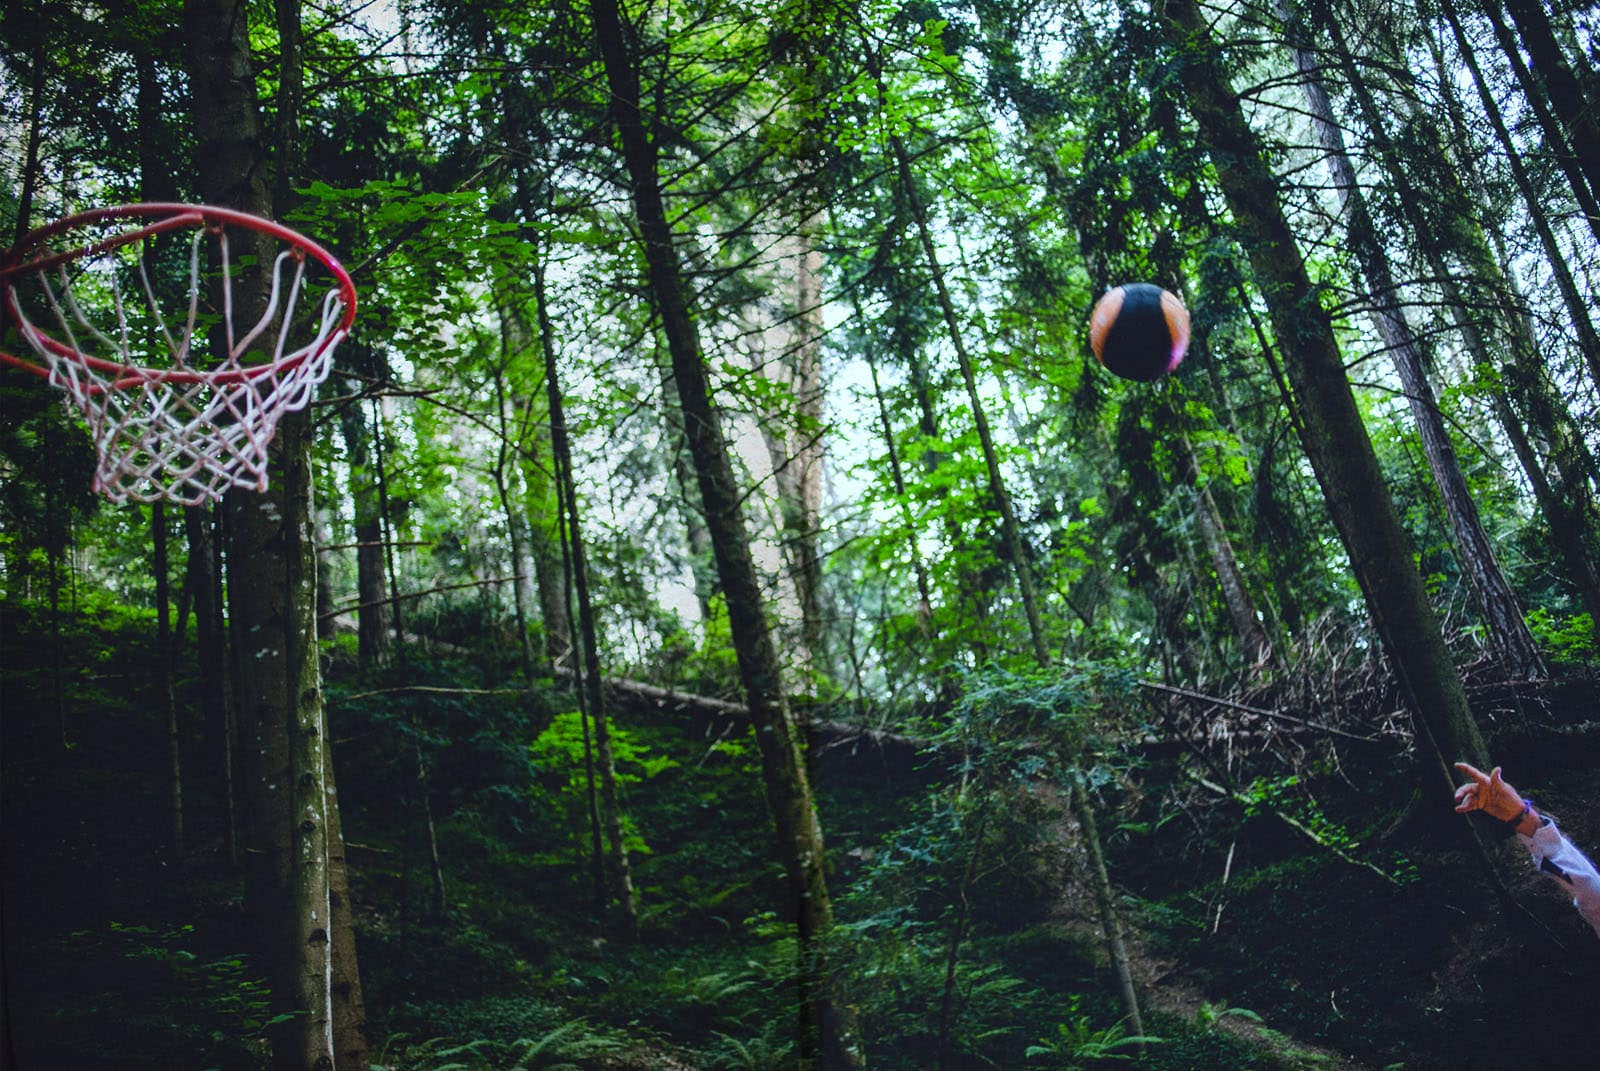 groom playing basketball in the middle of the forest